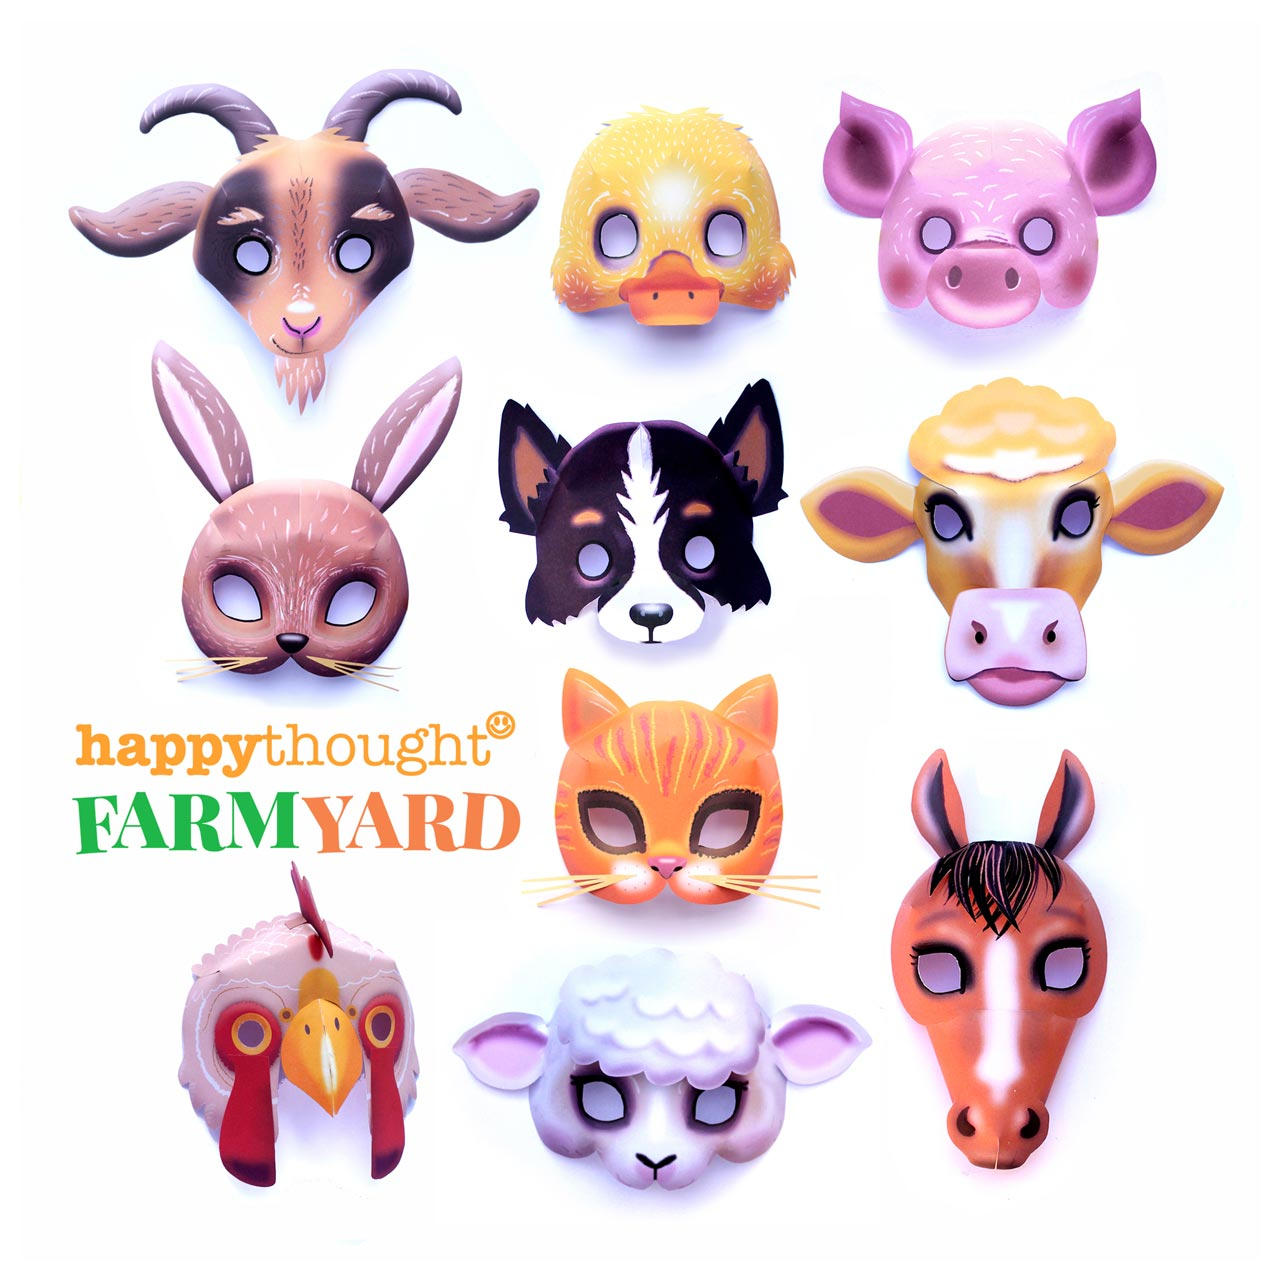 photo regarding Cow Costume Printable named 10 printable farm animal masks